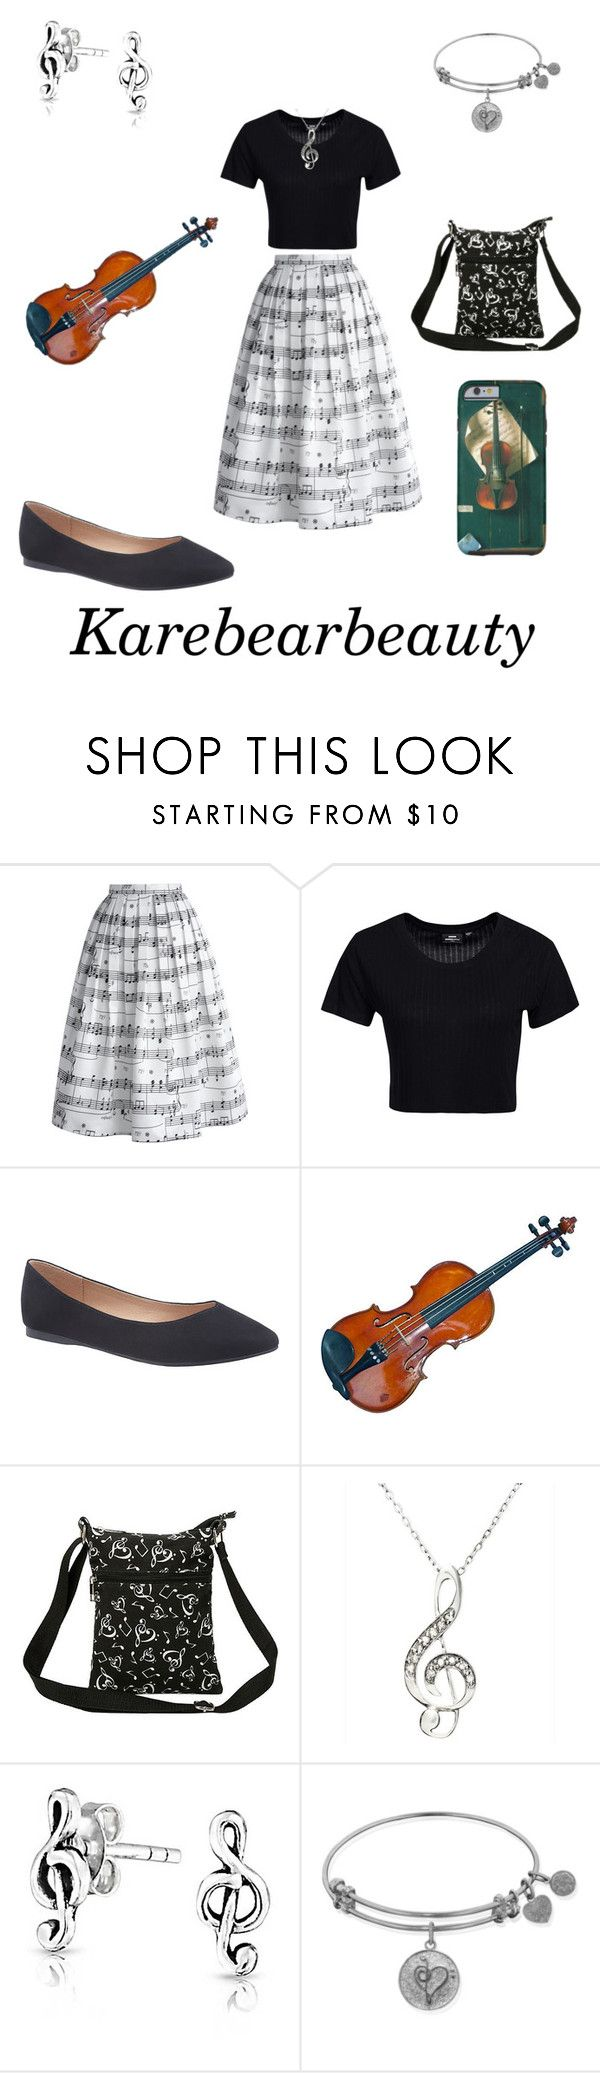 """""""Violin Recital"""" by karebearbeauty ❤ liked on Polyvore featuring Chicwish, Dr. Denim, Lane Bryant and Bling Jewelry"""